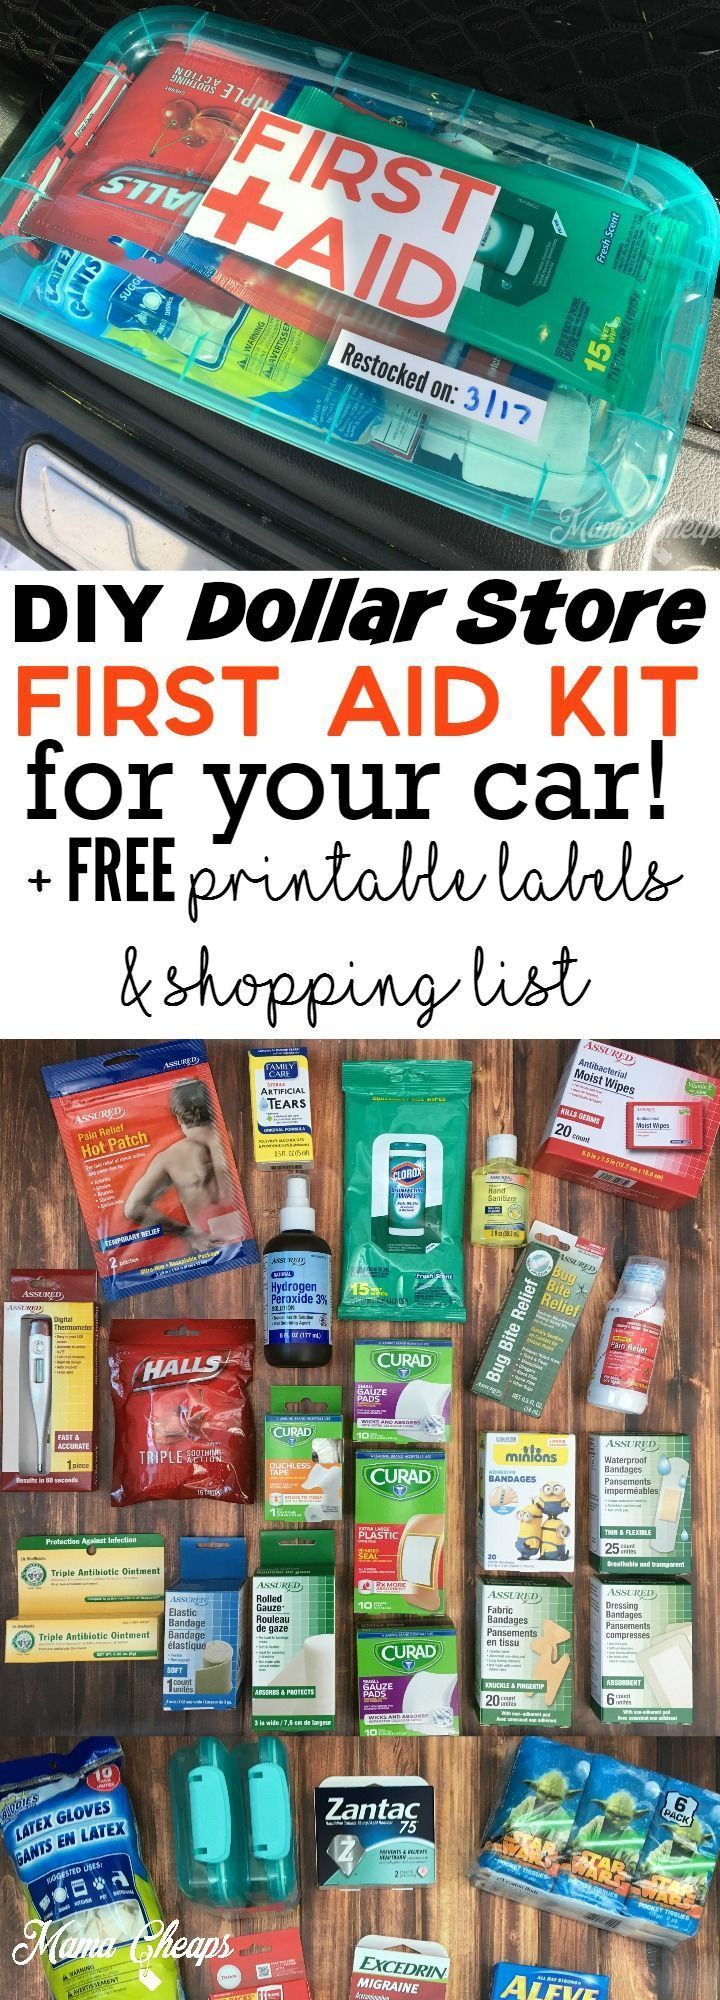 DIY Dollar Store First Aid Kit for Your Car + FREE…